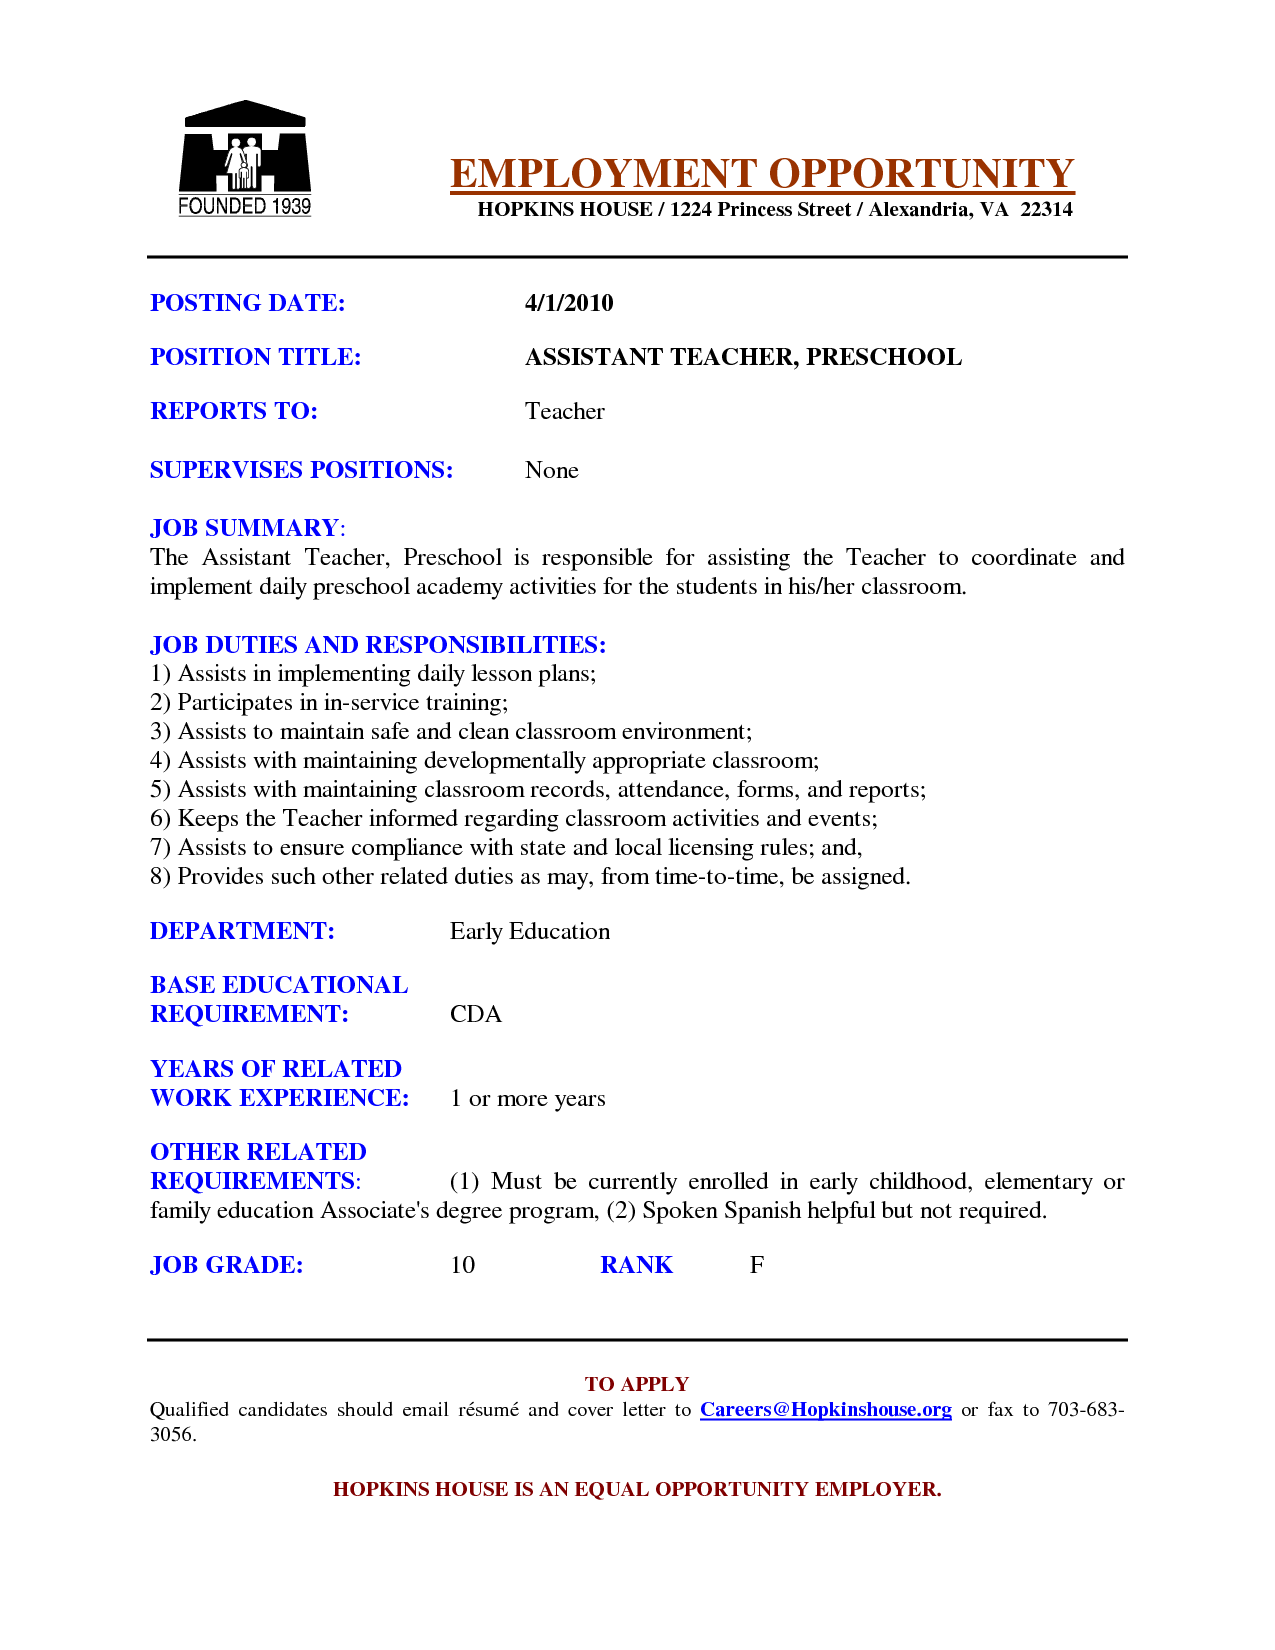 Resume For Assistant Teacher Preschool Assistant Teacher Resume Examples Google